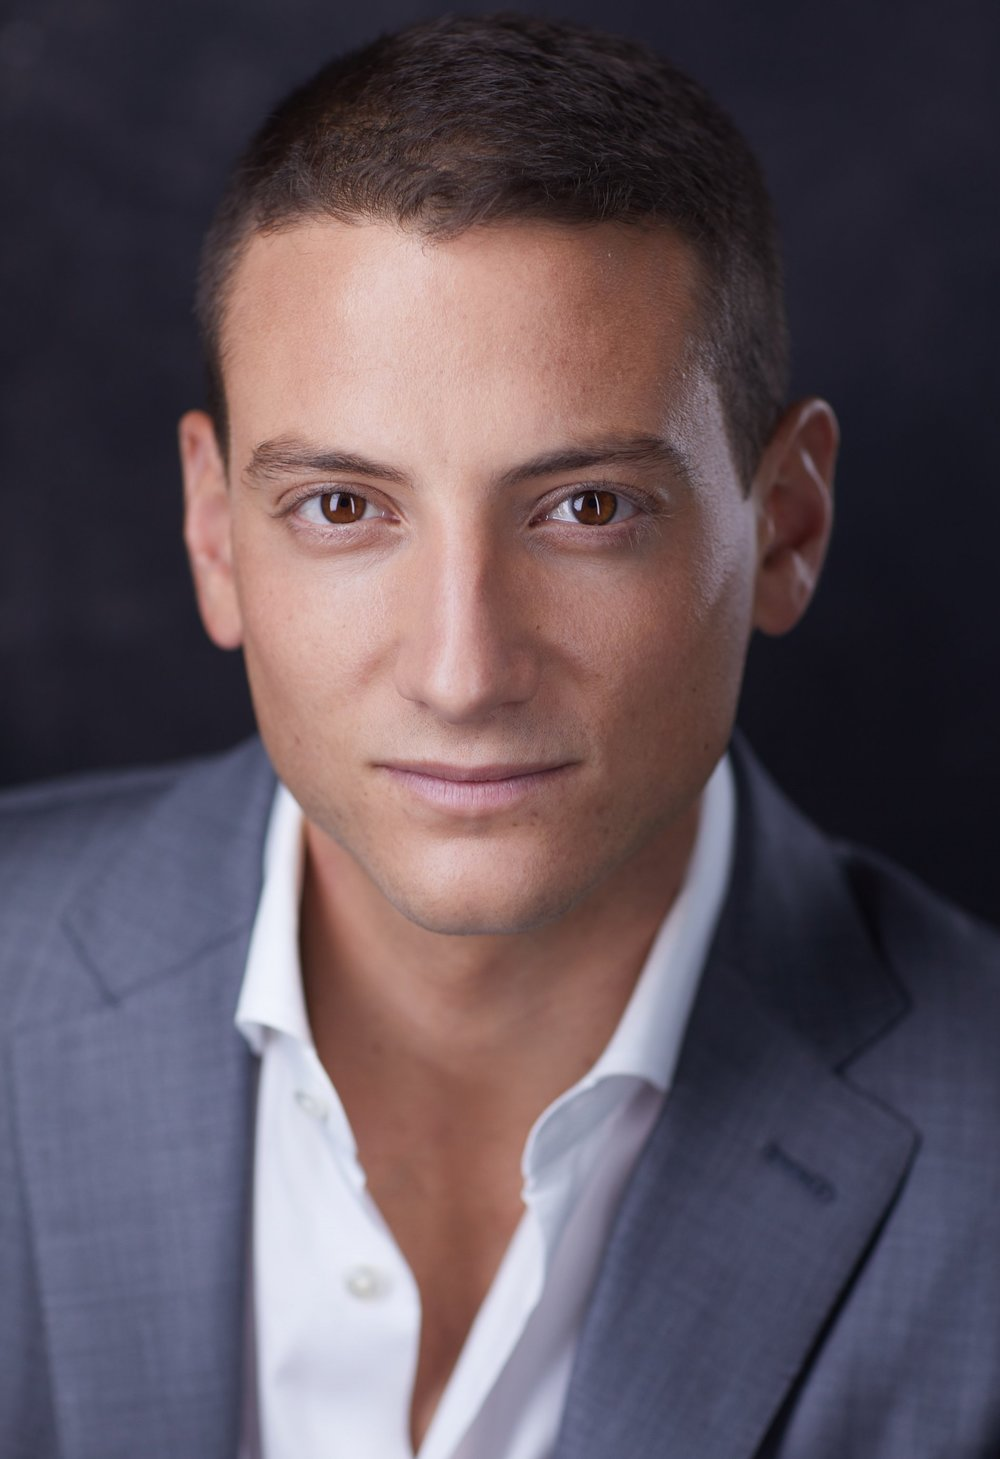 Matthew Greenblatt Headshot-3 - matthew greenblatt.jpg